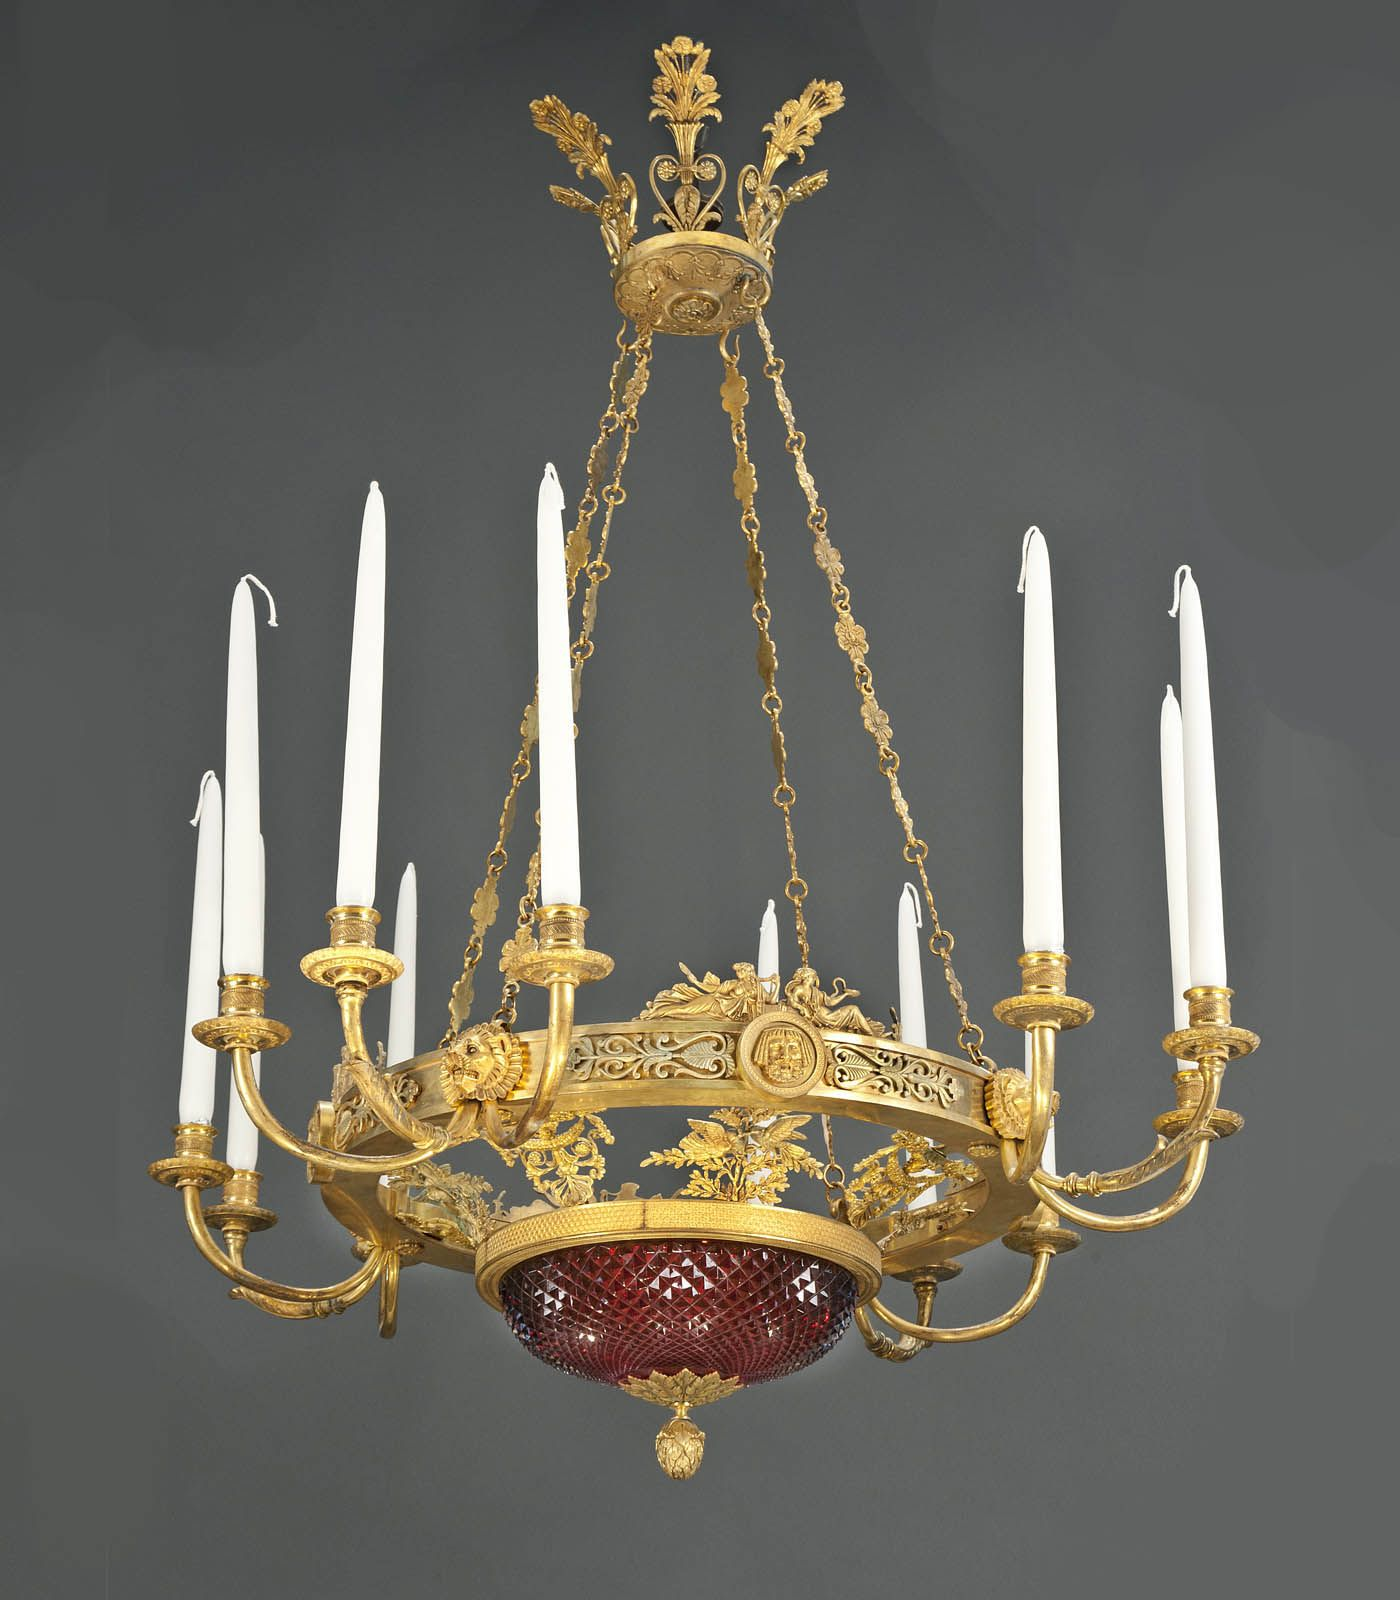 A Matched Pair of Important and Rare, Russian Empire Chandeliers by Andrei  Schreiber - A Matched Pair Of Important And Rare, Russian Empire Chandeliers By